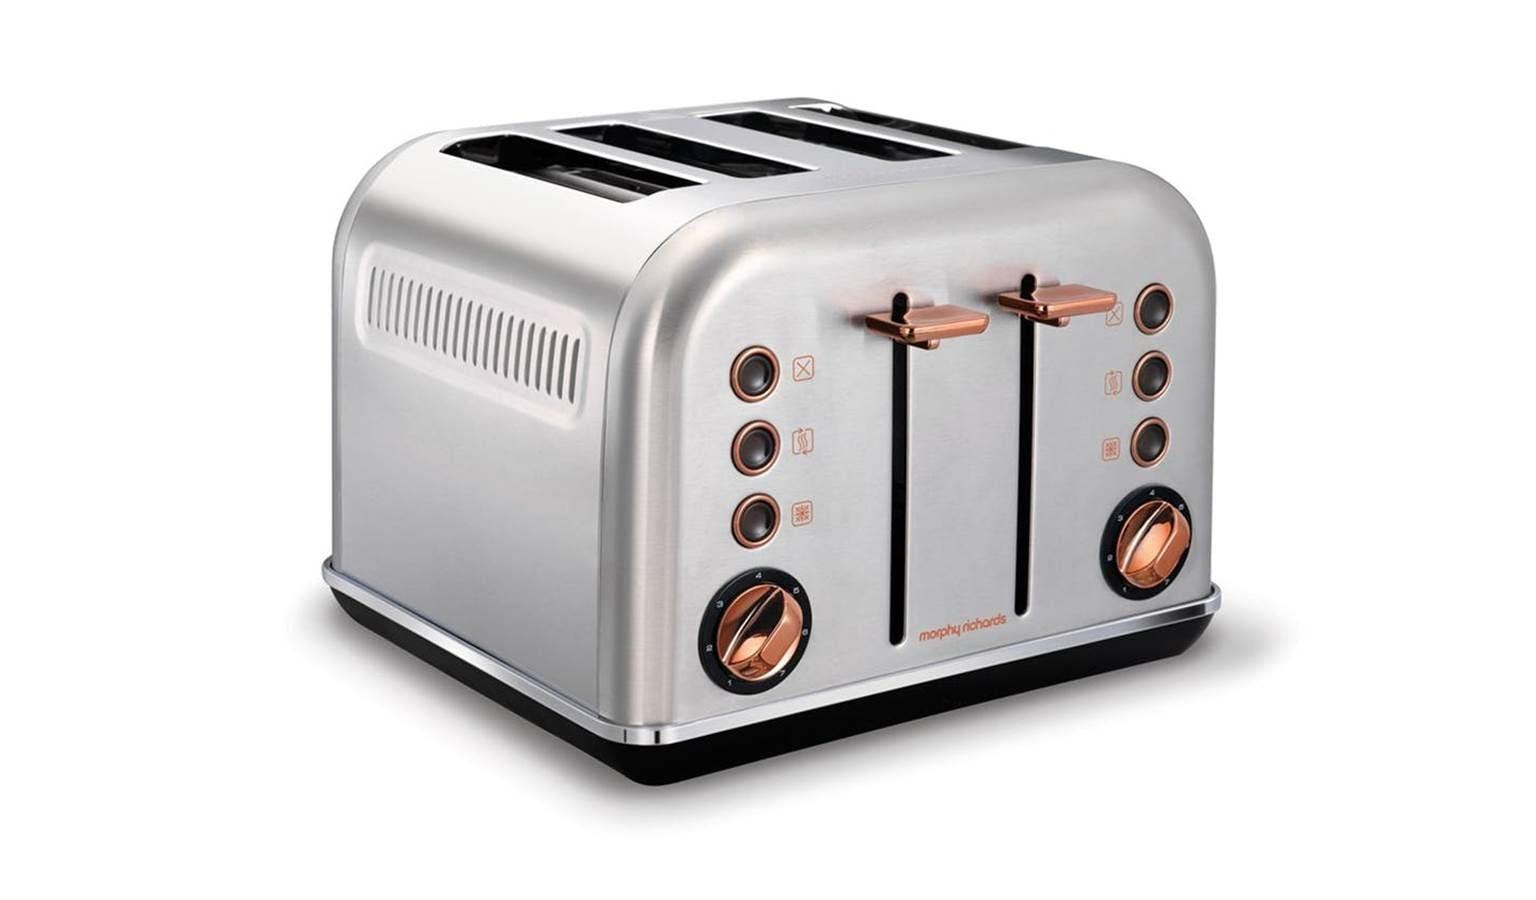 Morphy Richards Accents Toaster Rose Gold Brushed Harvey Norman Malaysia Morphy richards is a brand of electrical appliances headquartered in swinton, in south yorkshire, england. morphy richards 242105 accents 4 slice toaster rose gold brushed